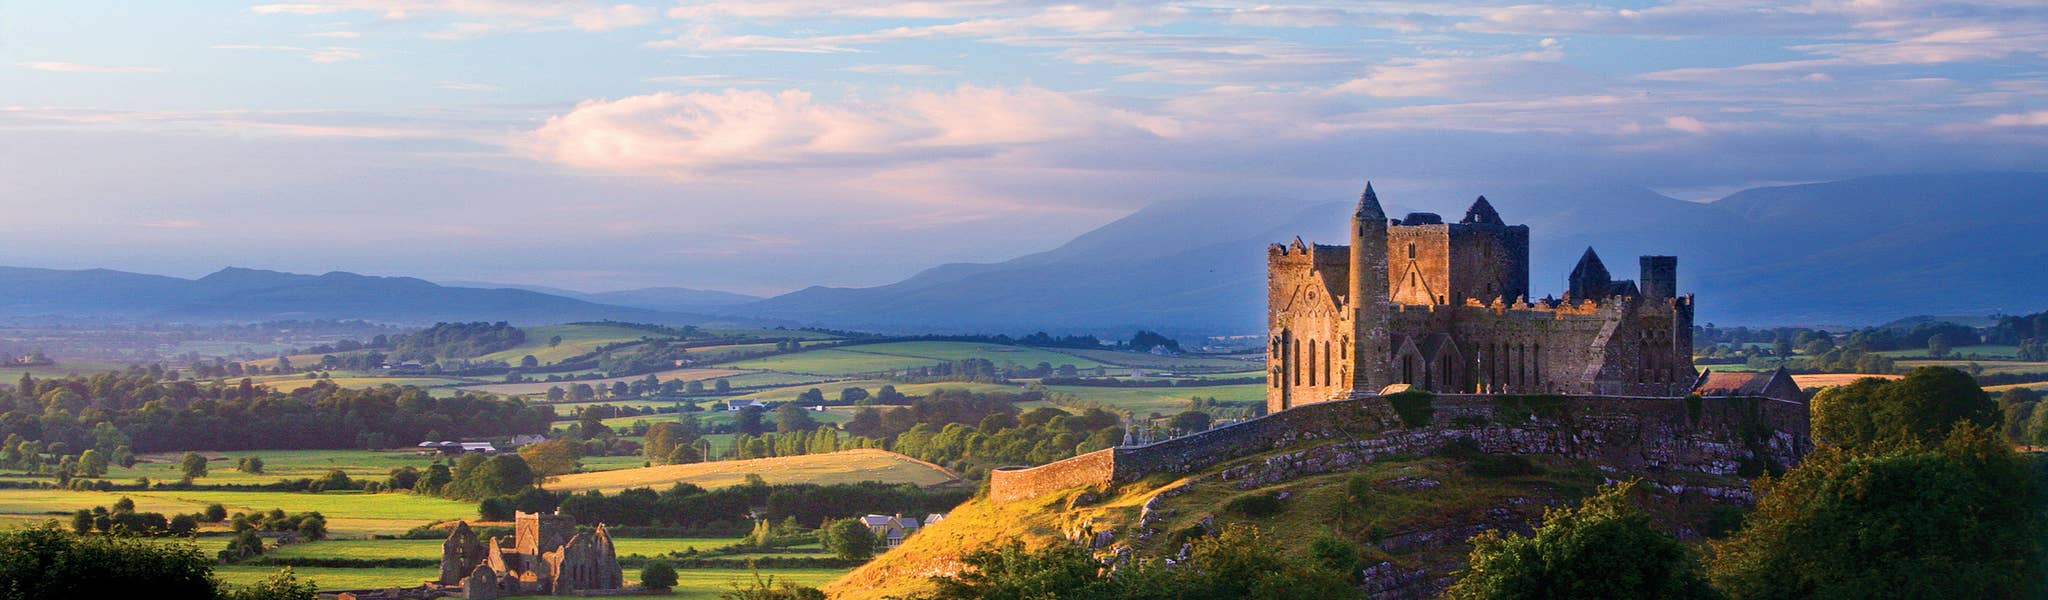 Cheap flights from USA to Ireland - Aer Lingus